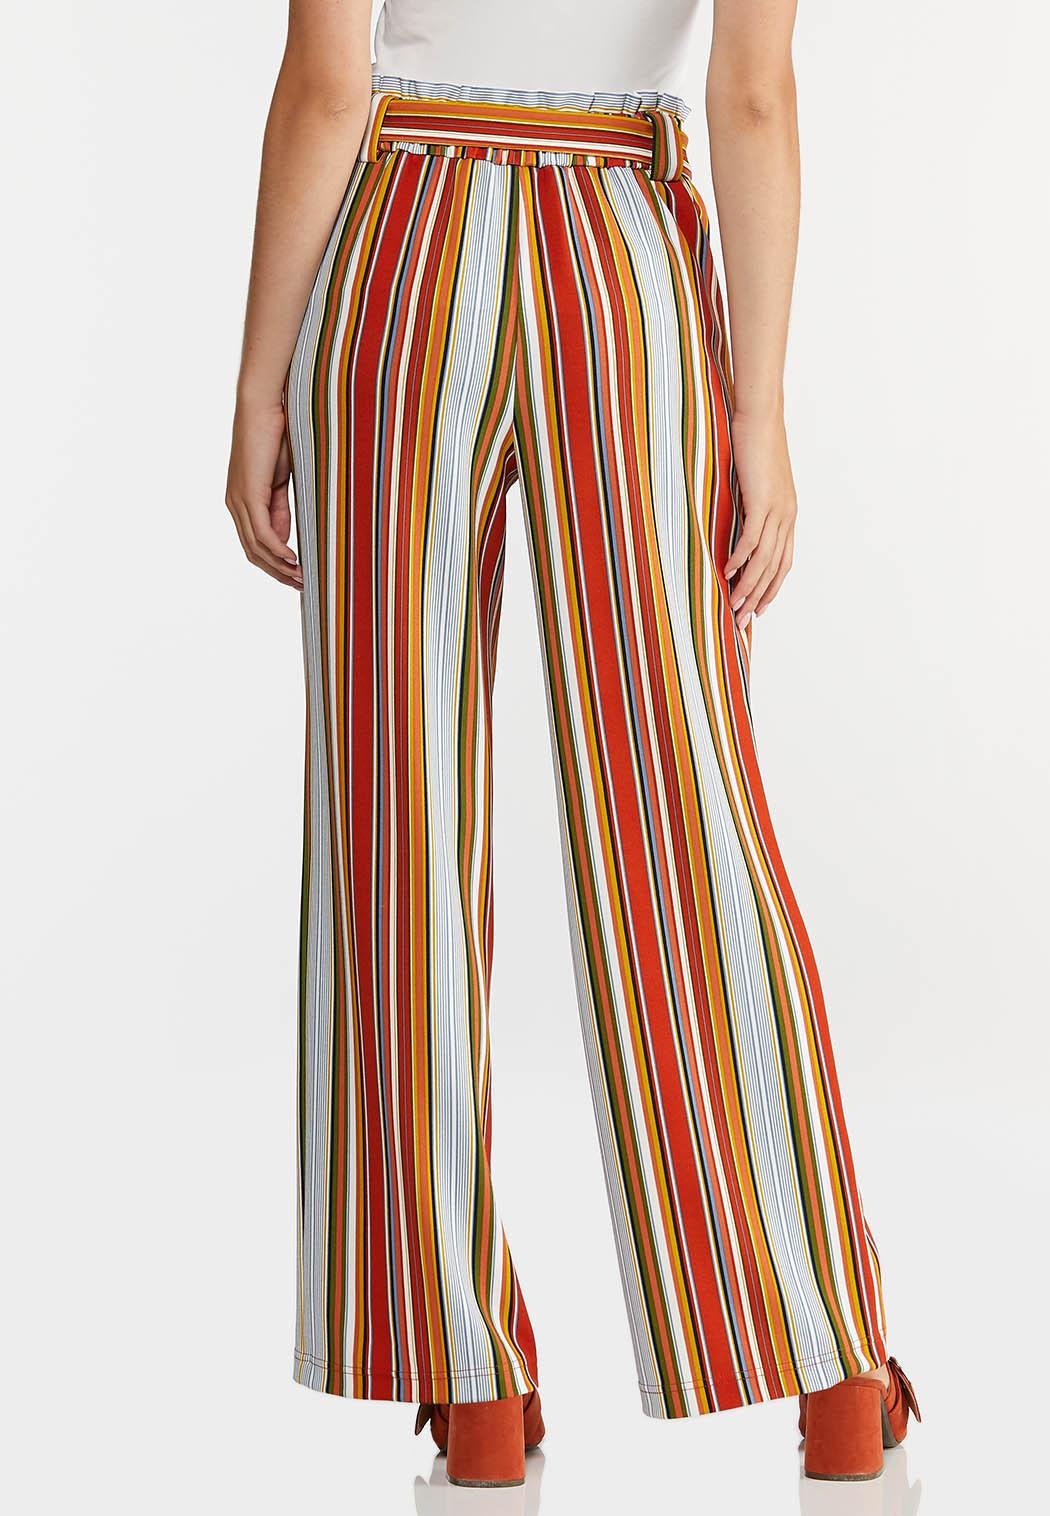 Striped Paperbag Palazzo Pants (Item #44288415)